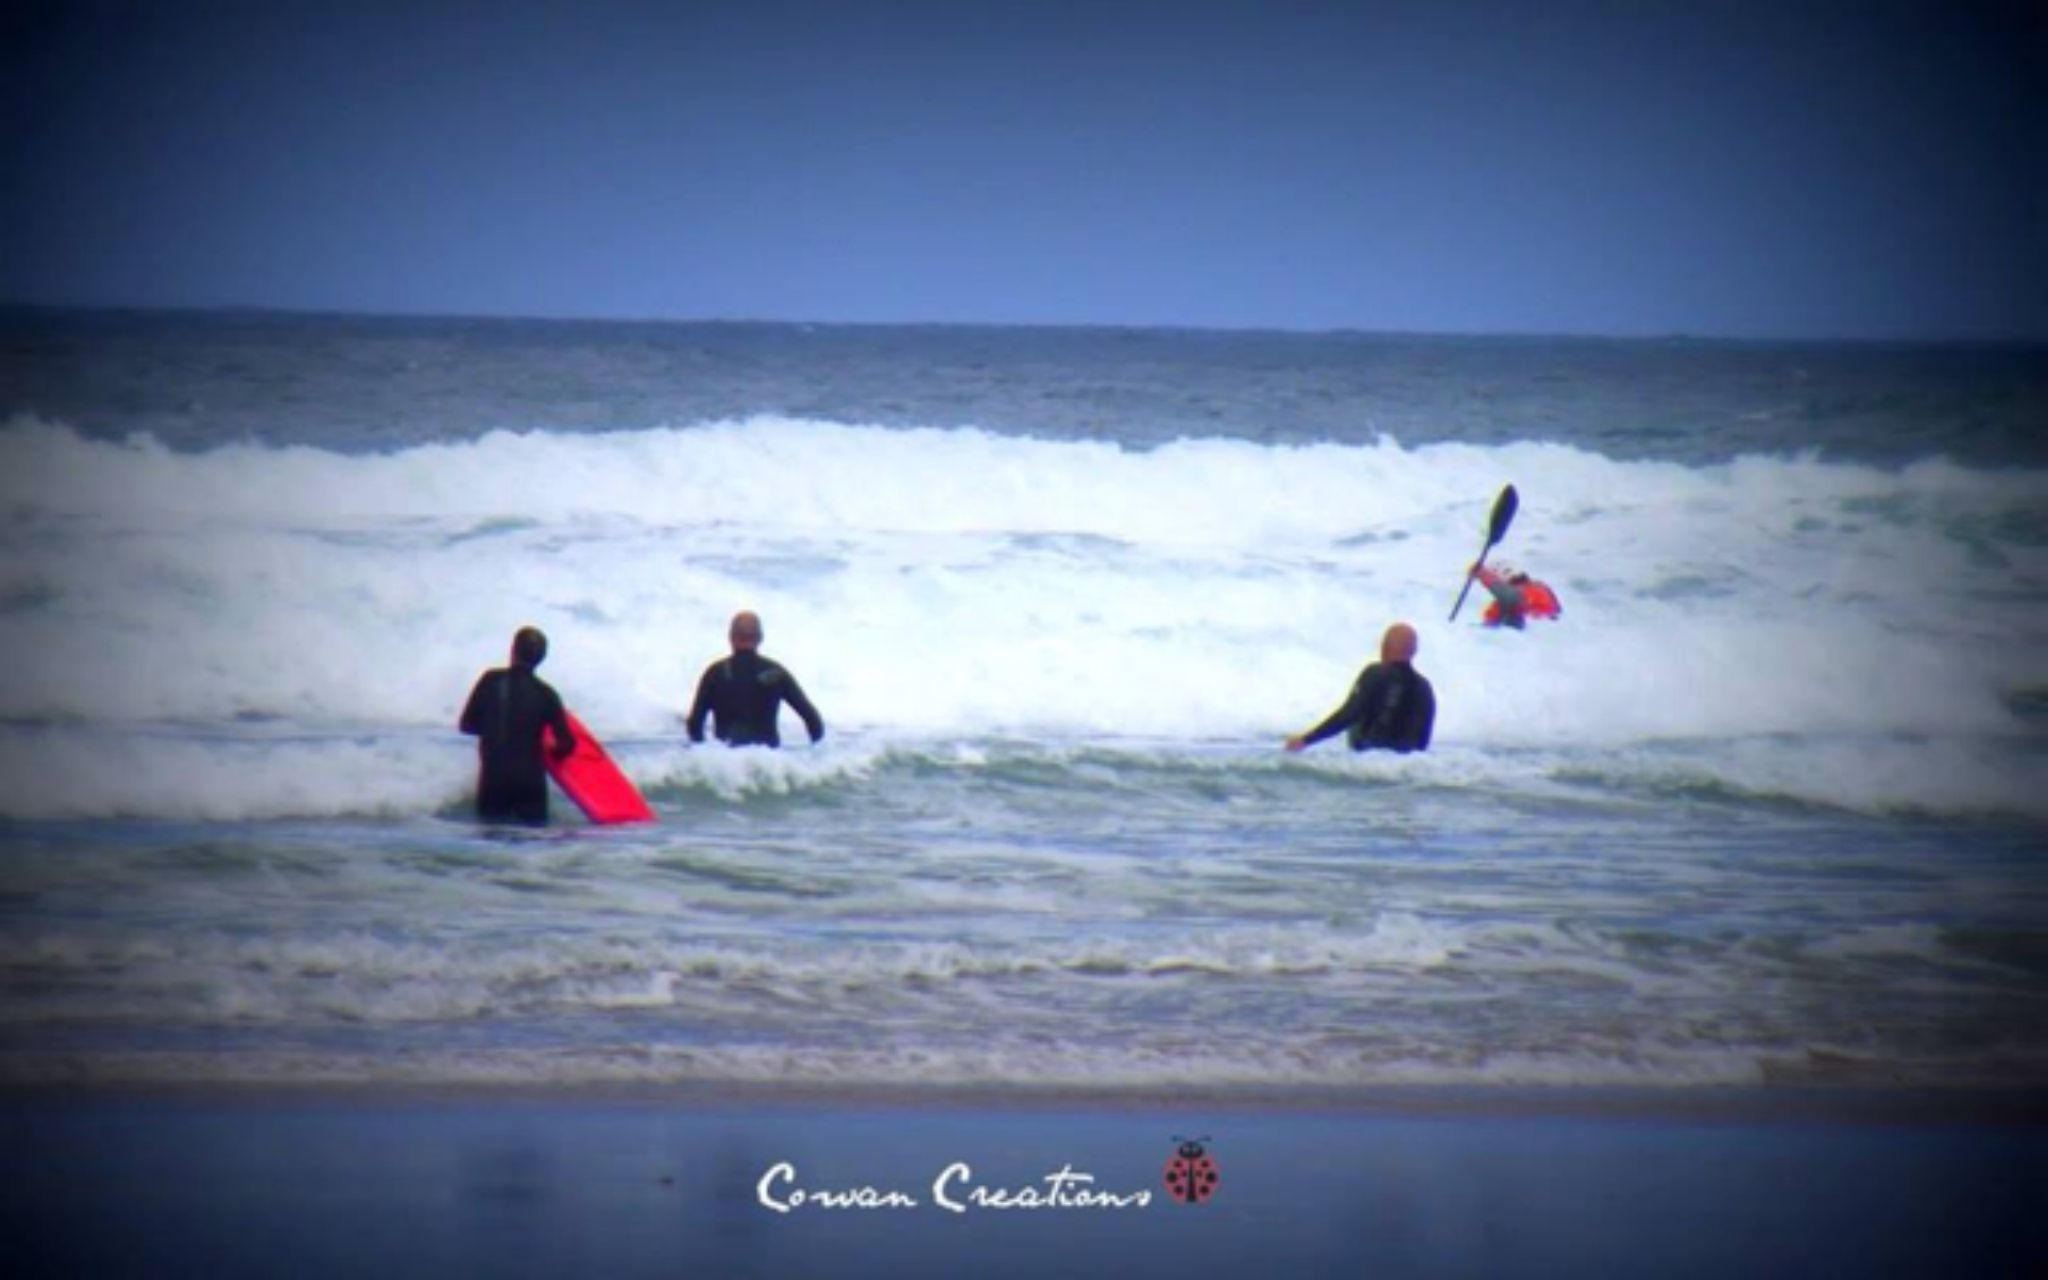 Cornwall Surfers by CowanCreations